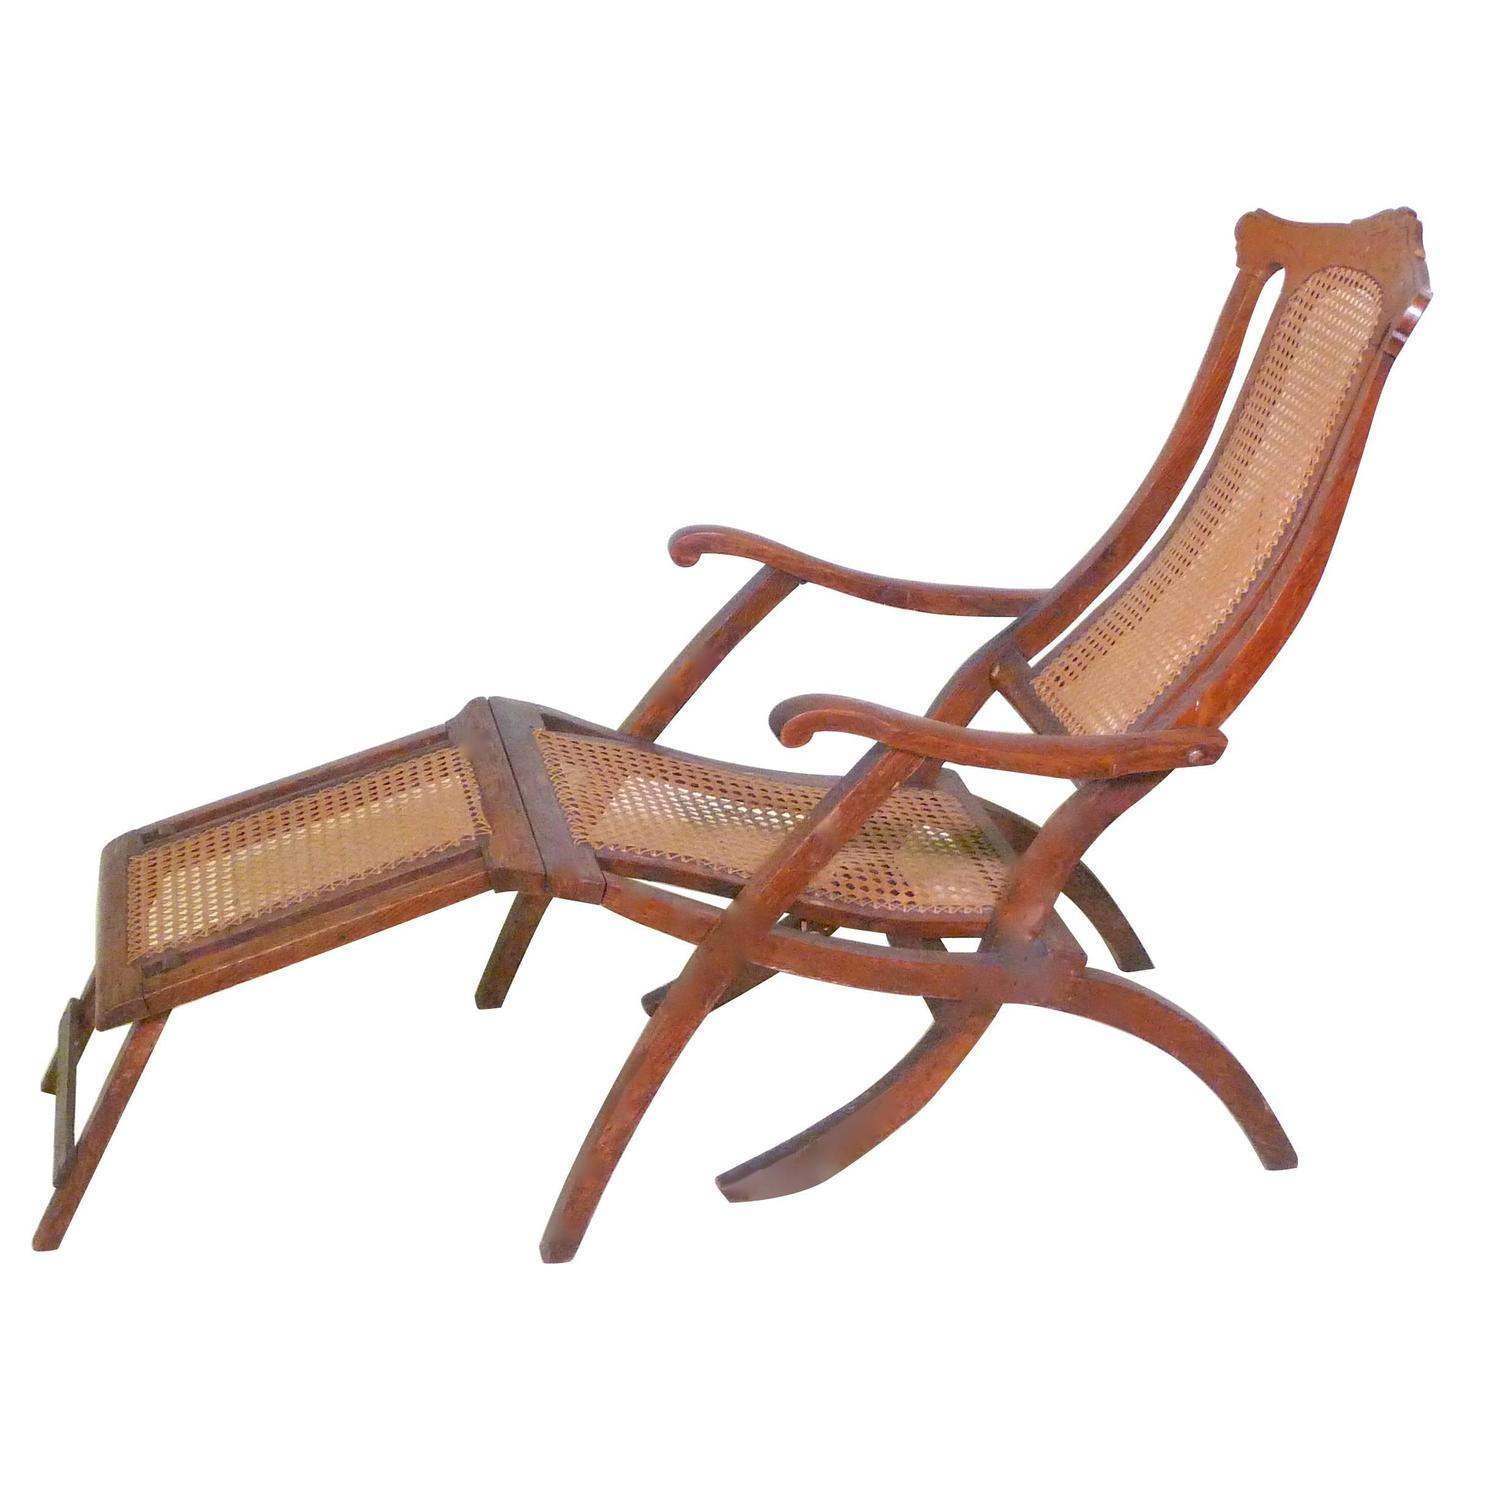 Antique Folding Luxury Wood Steamer Deck Chair, circa 1890, England For  Sale at 1stdibs - Antique Folding Luxury Wood Steamer Deck Chair, Circa 1890, England